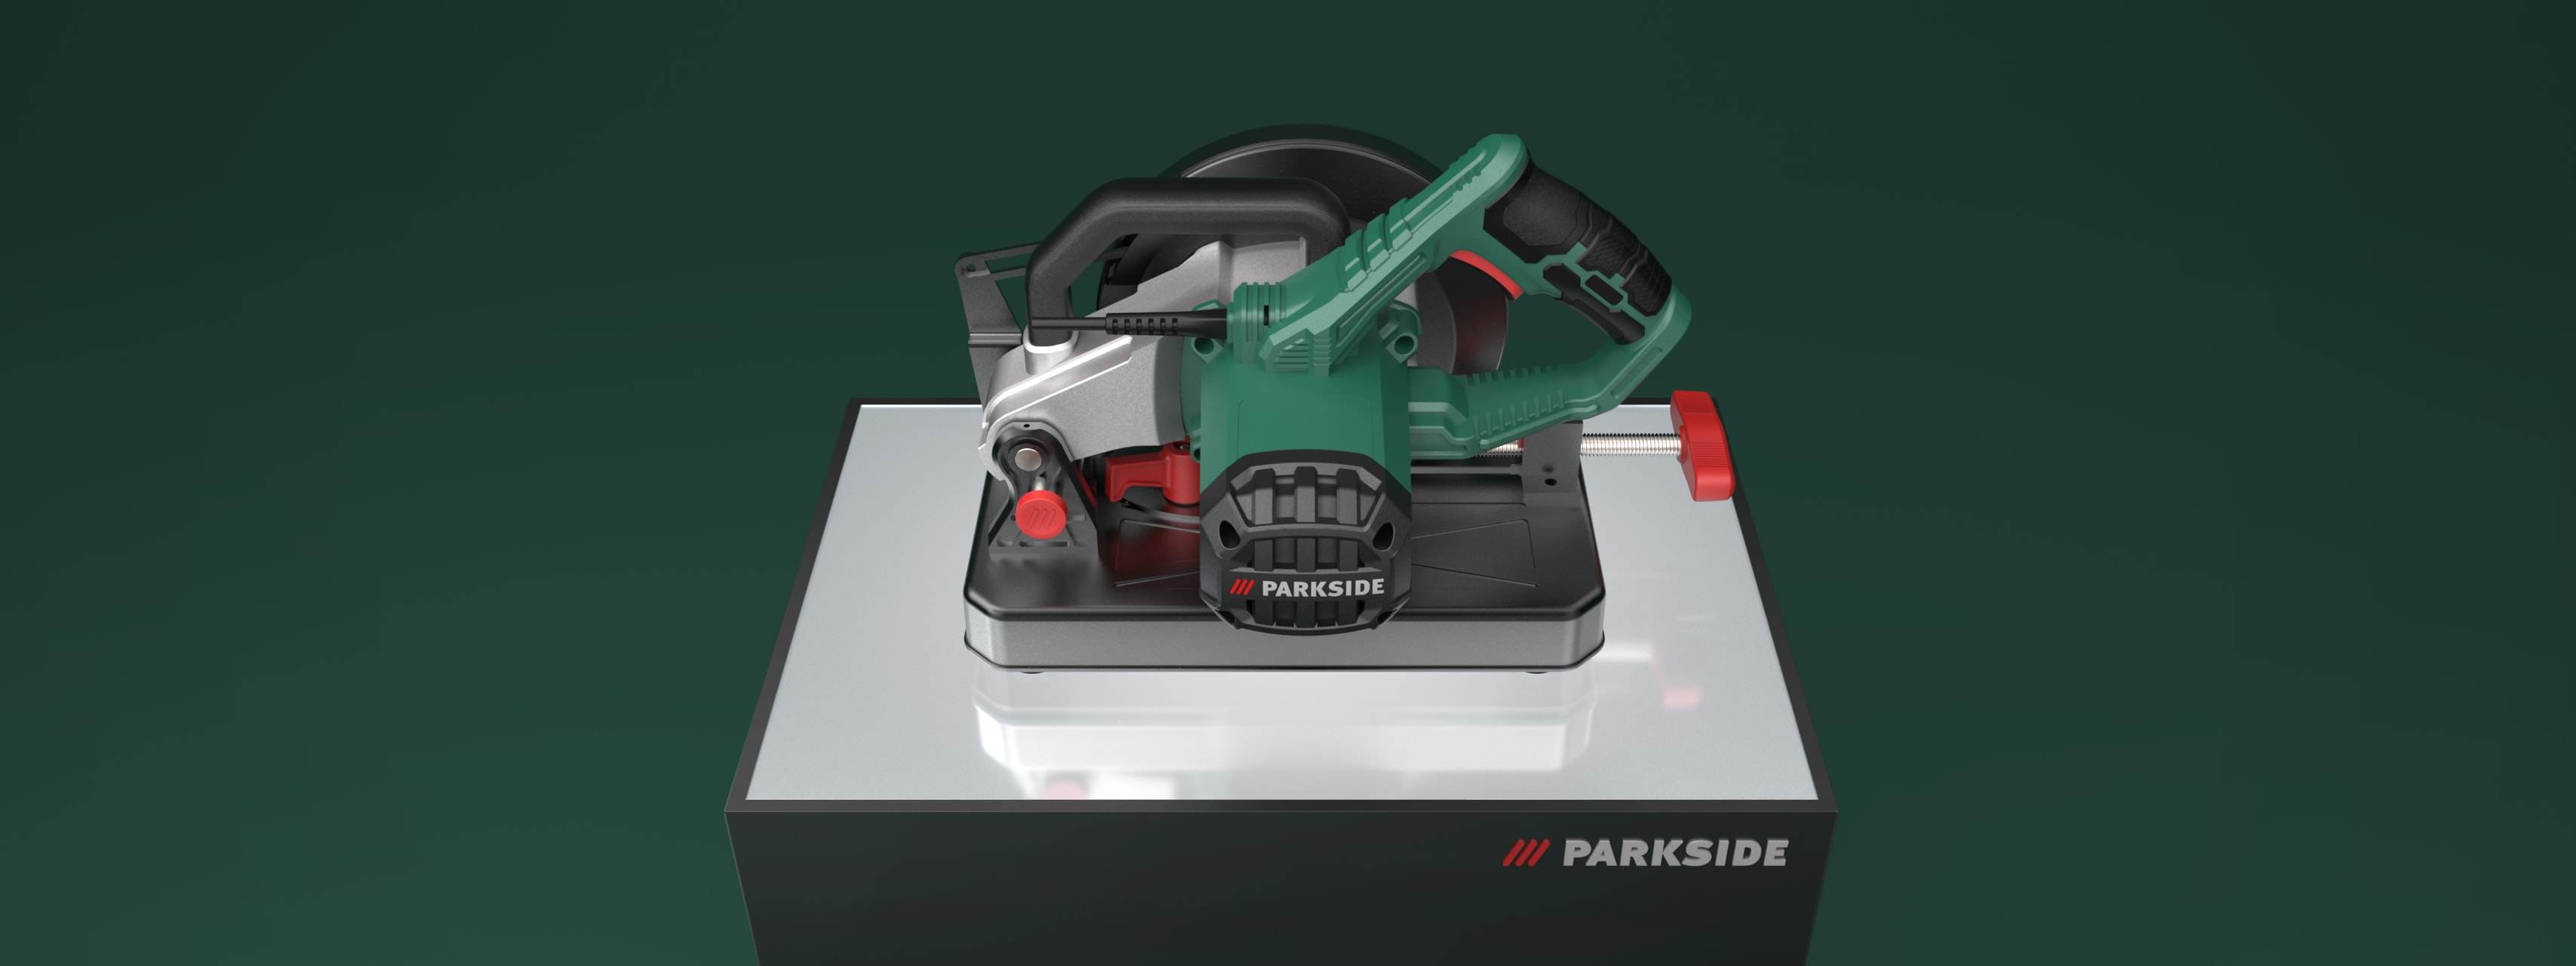 parkside_cut_off_machine_industrialdesign_projekter